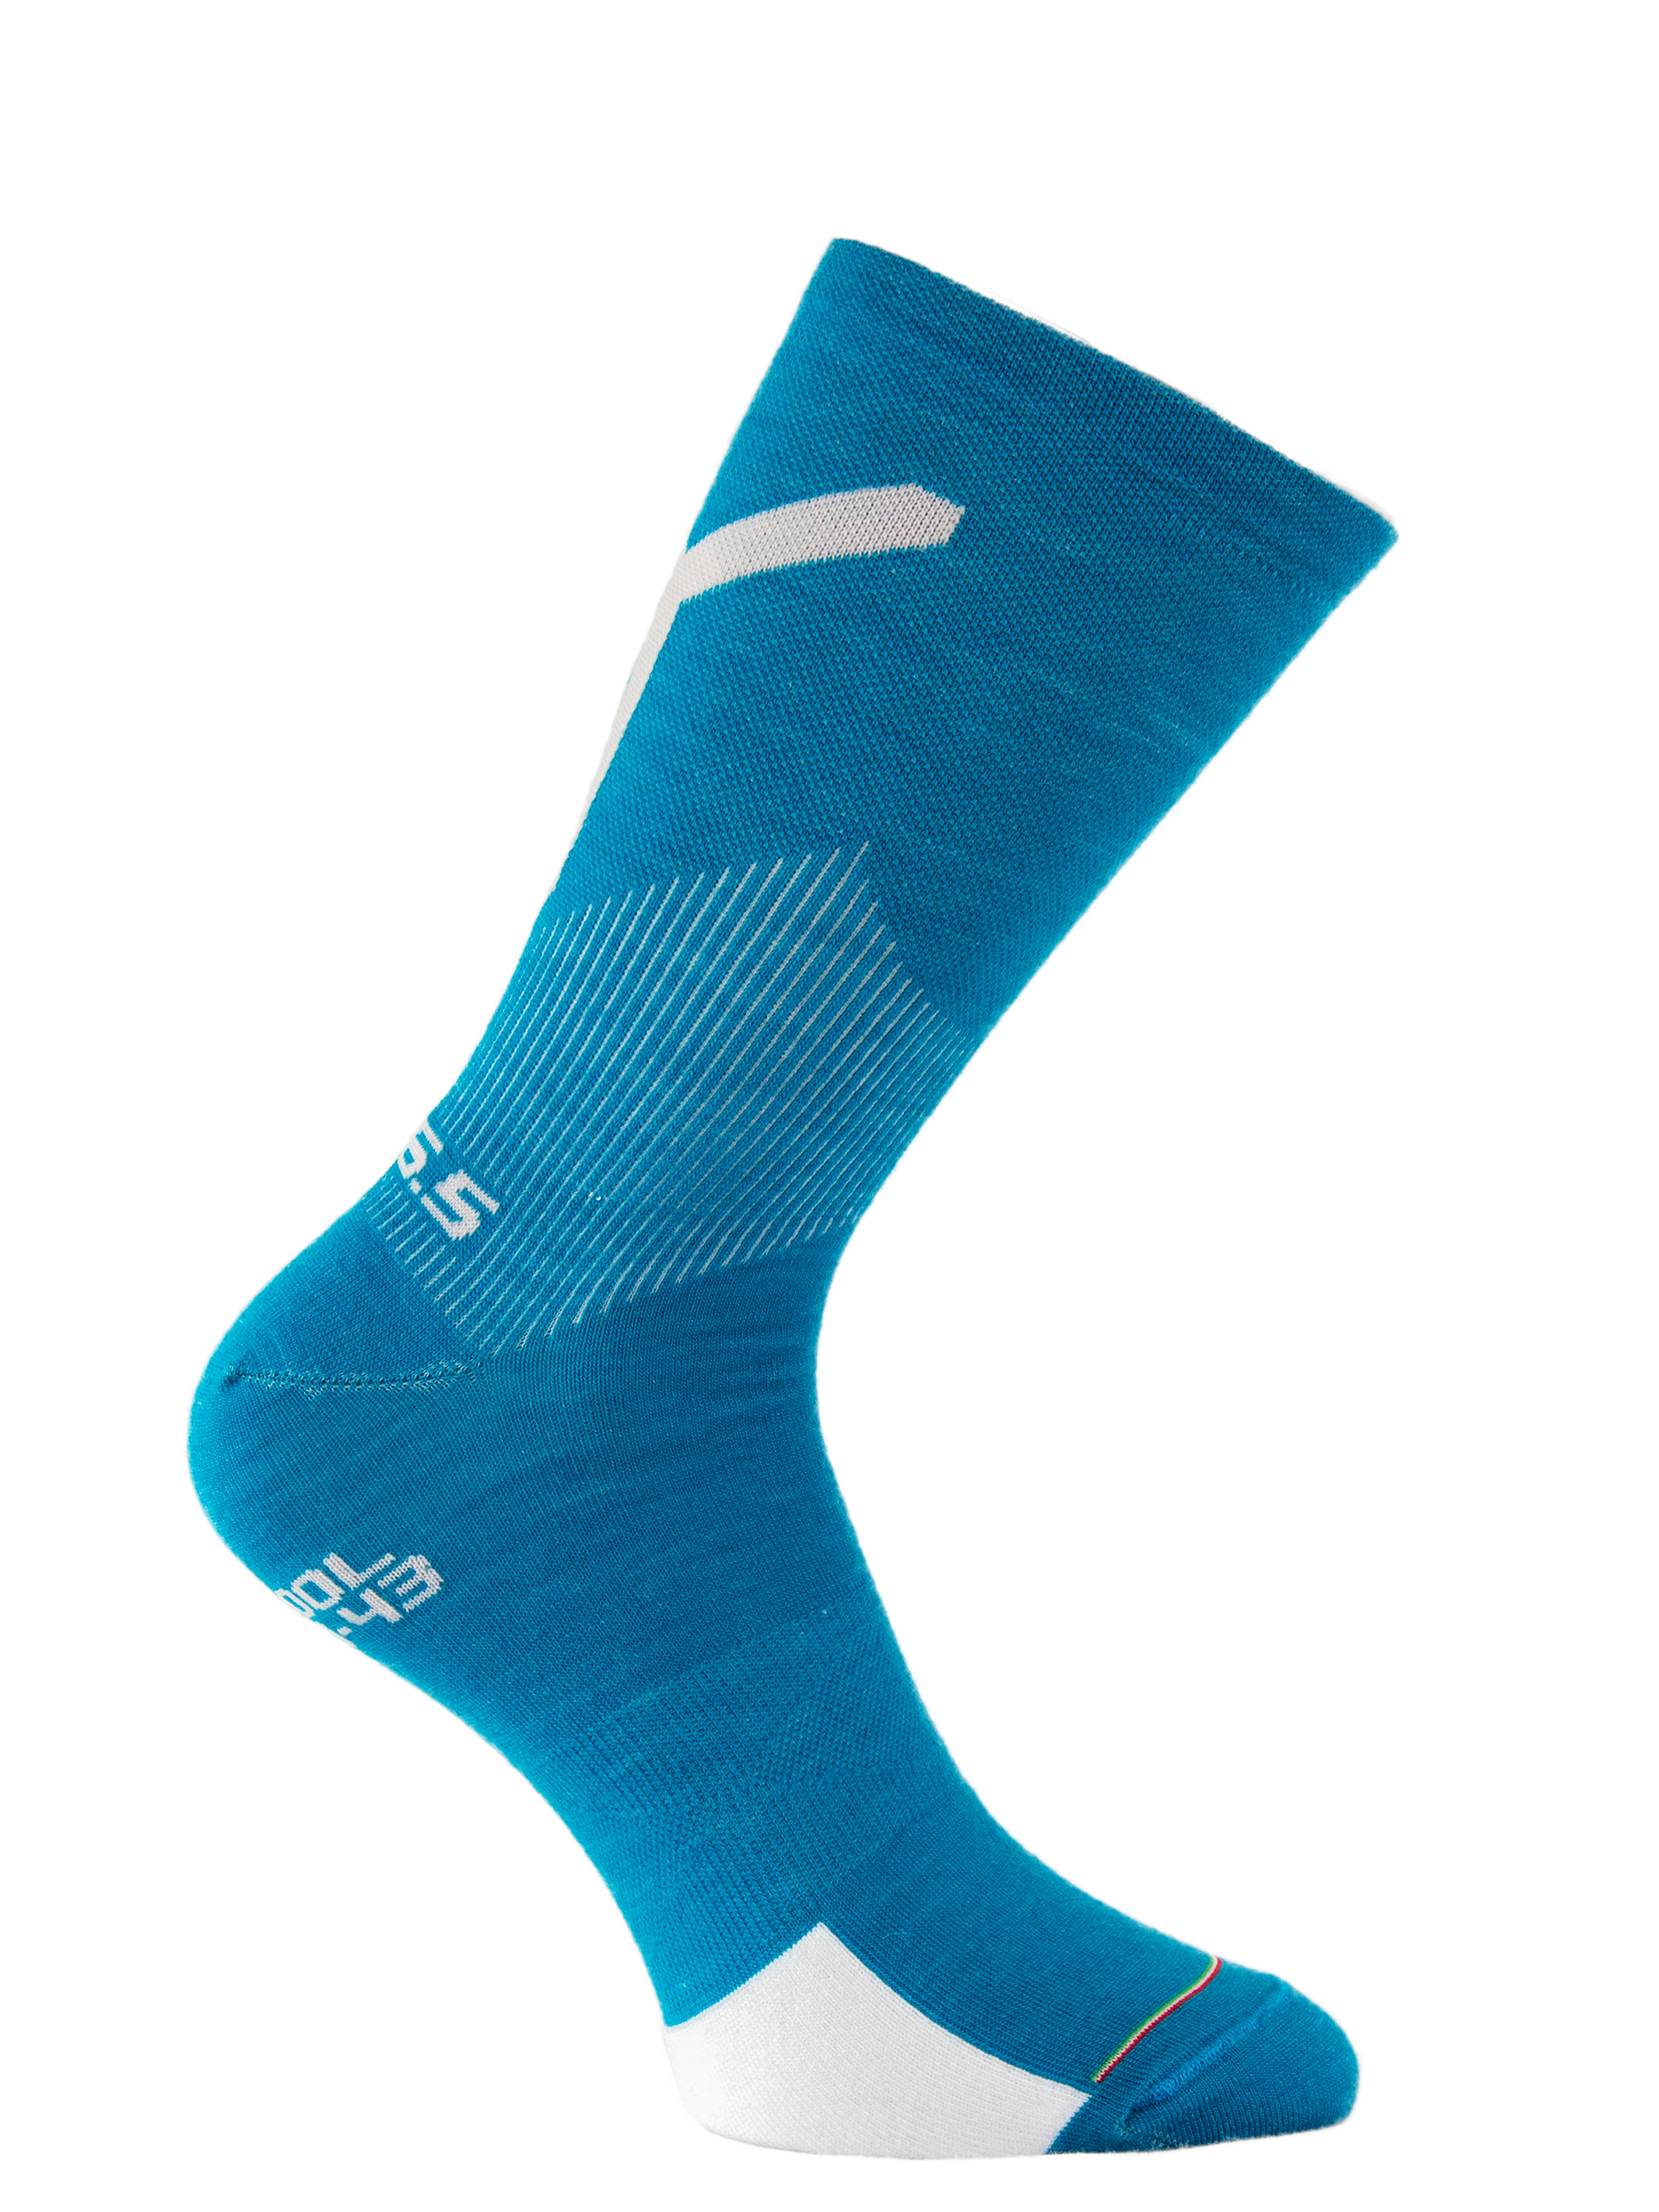 Cycling socks Plus You Socks Q36.5 - side